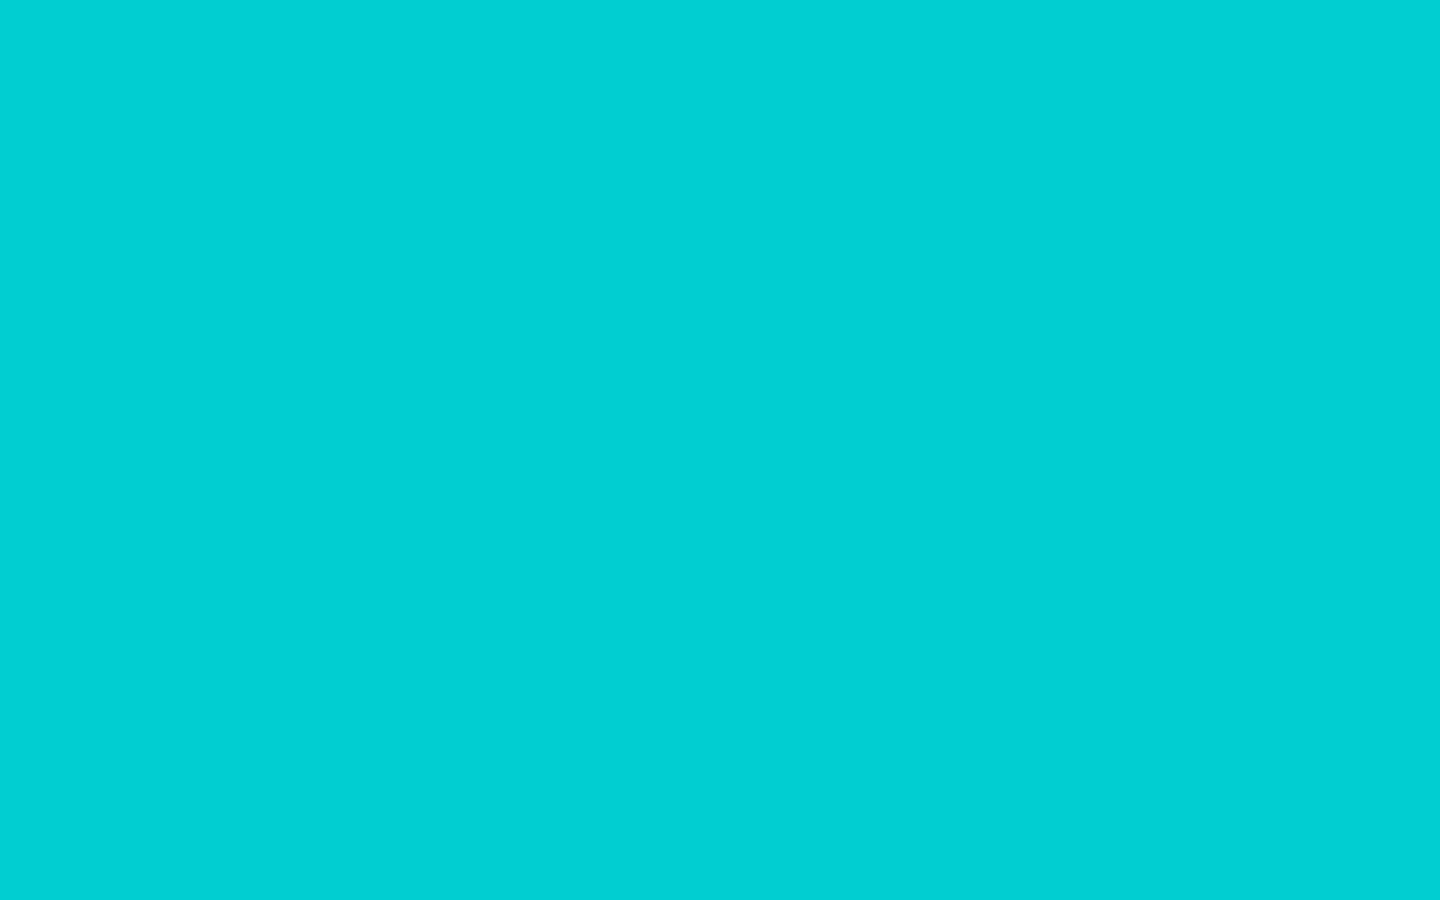 1440x900 Dark Turquoise Solid Color Background